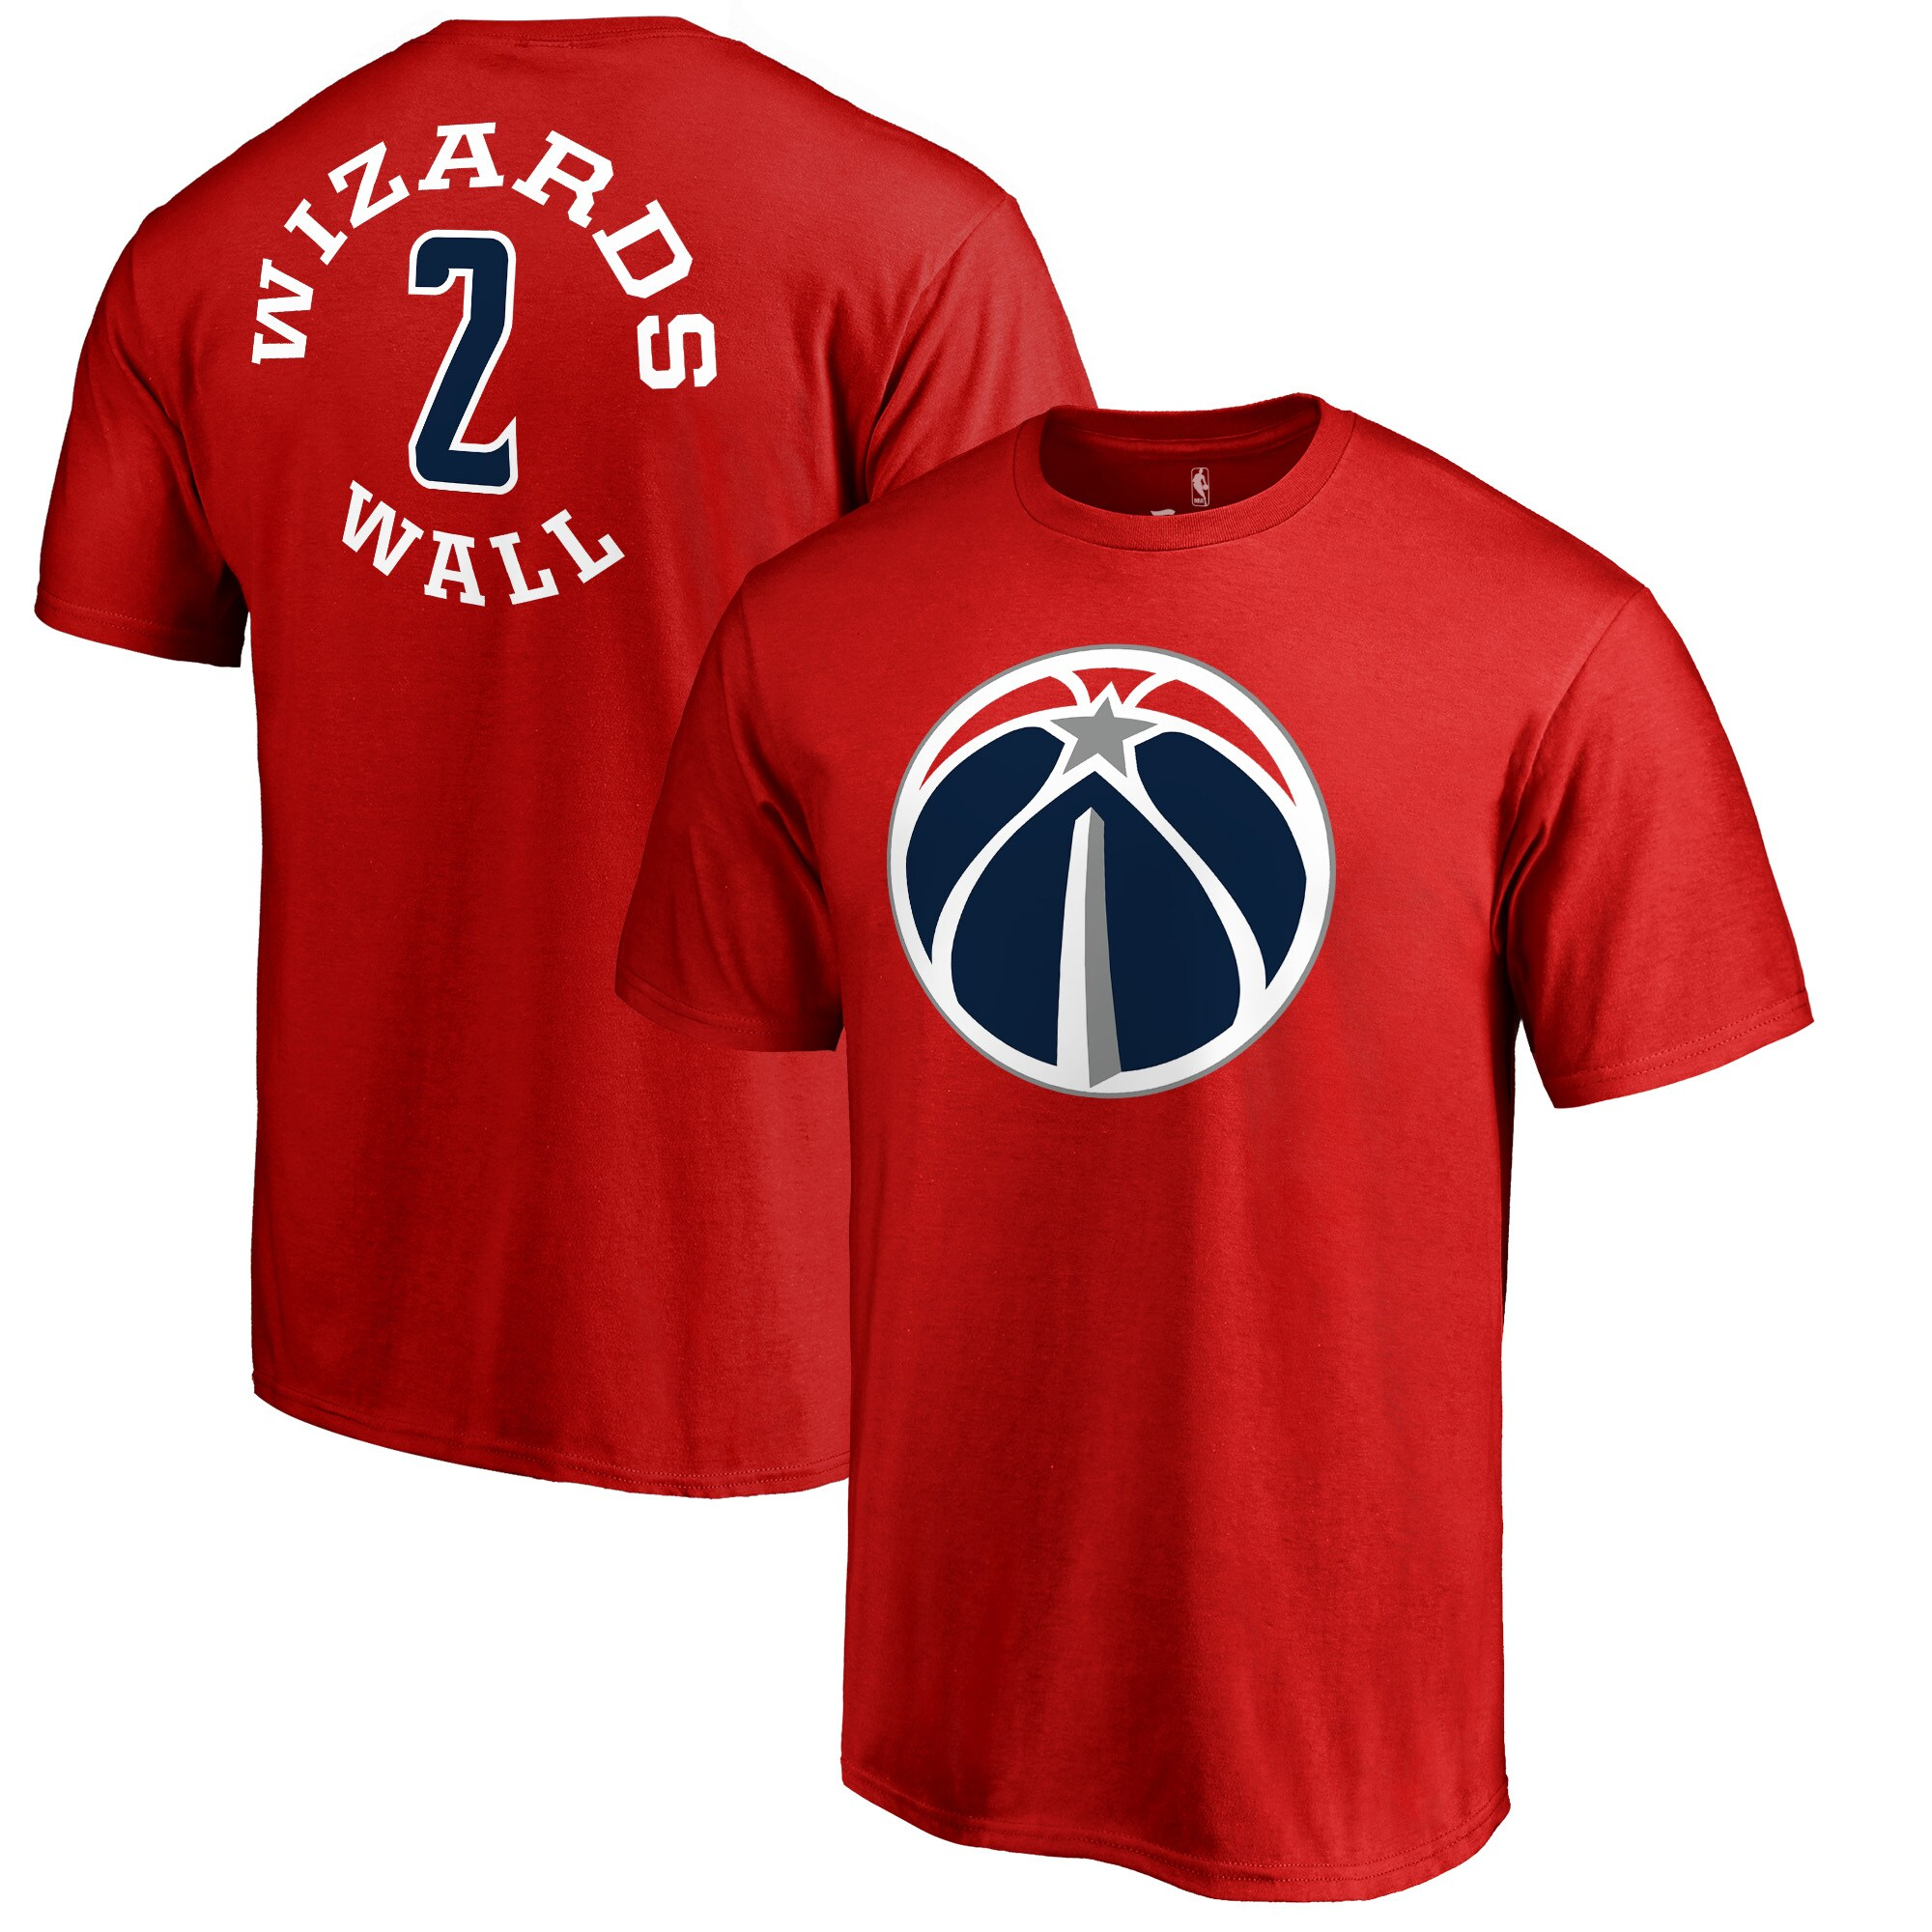 John Wall Washington Wizards Fanatics Branded Round About Name & Number T-Shirt - Red